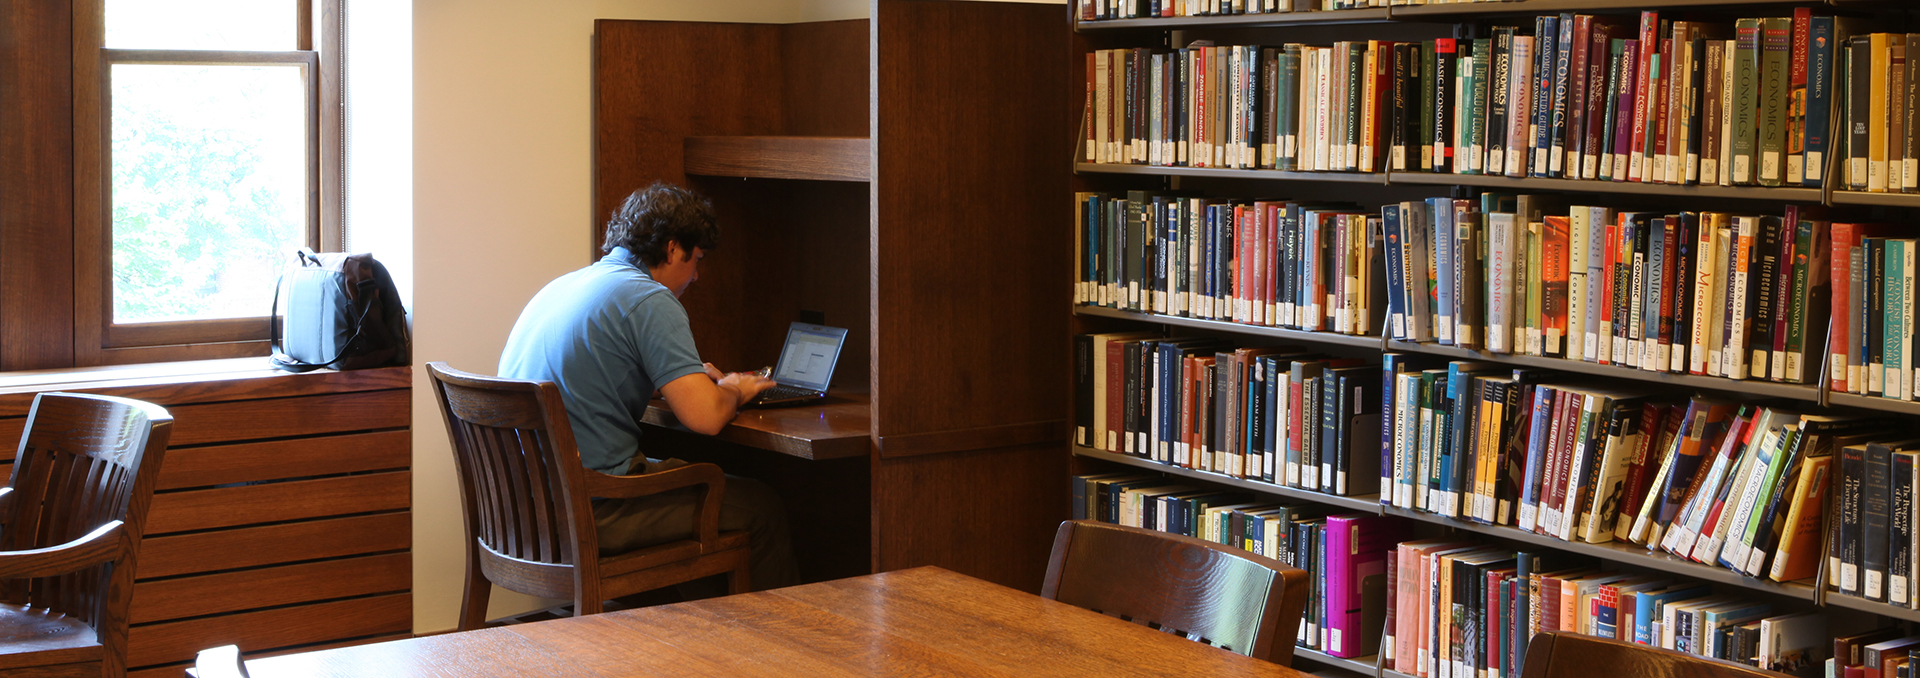 Student studying at a carrel in the John W Graham Library